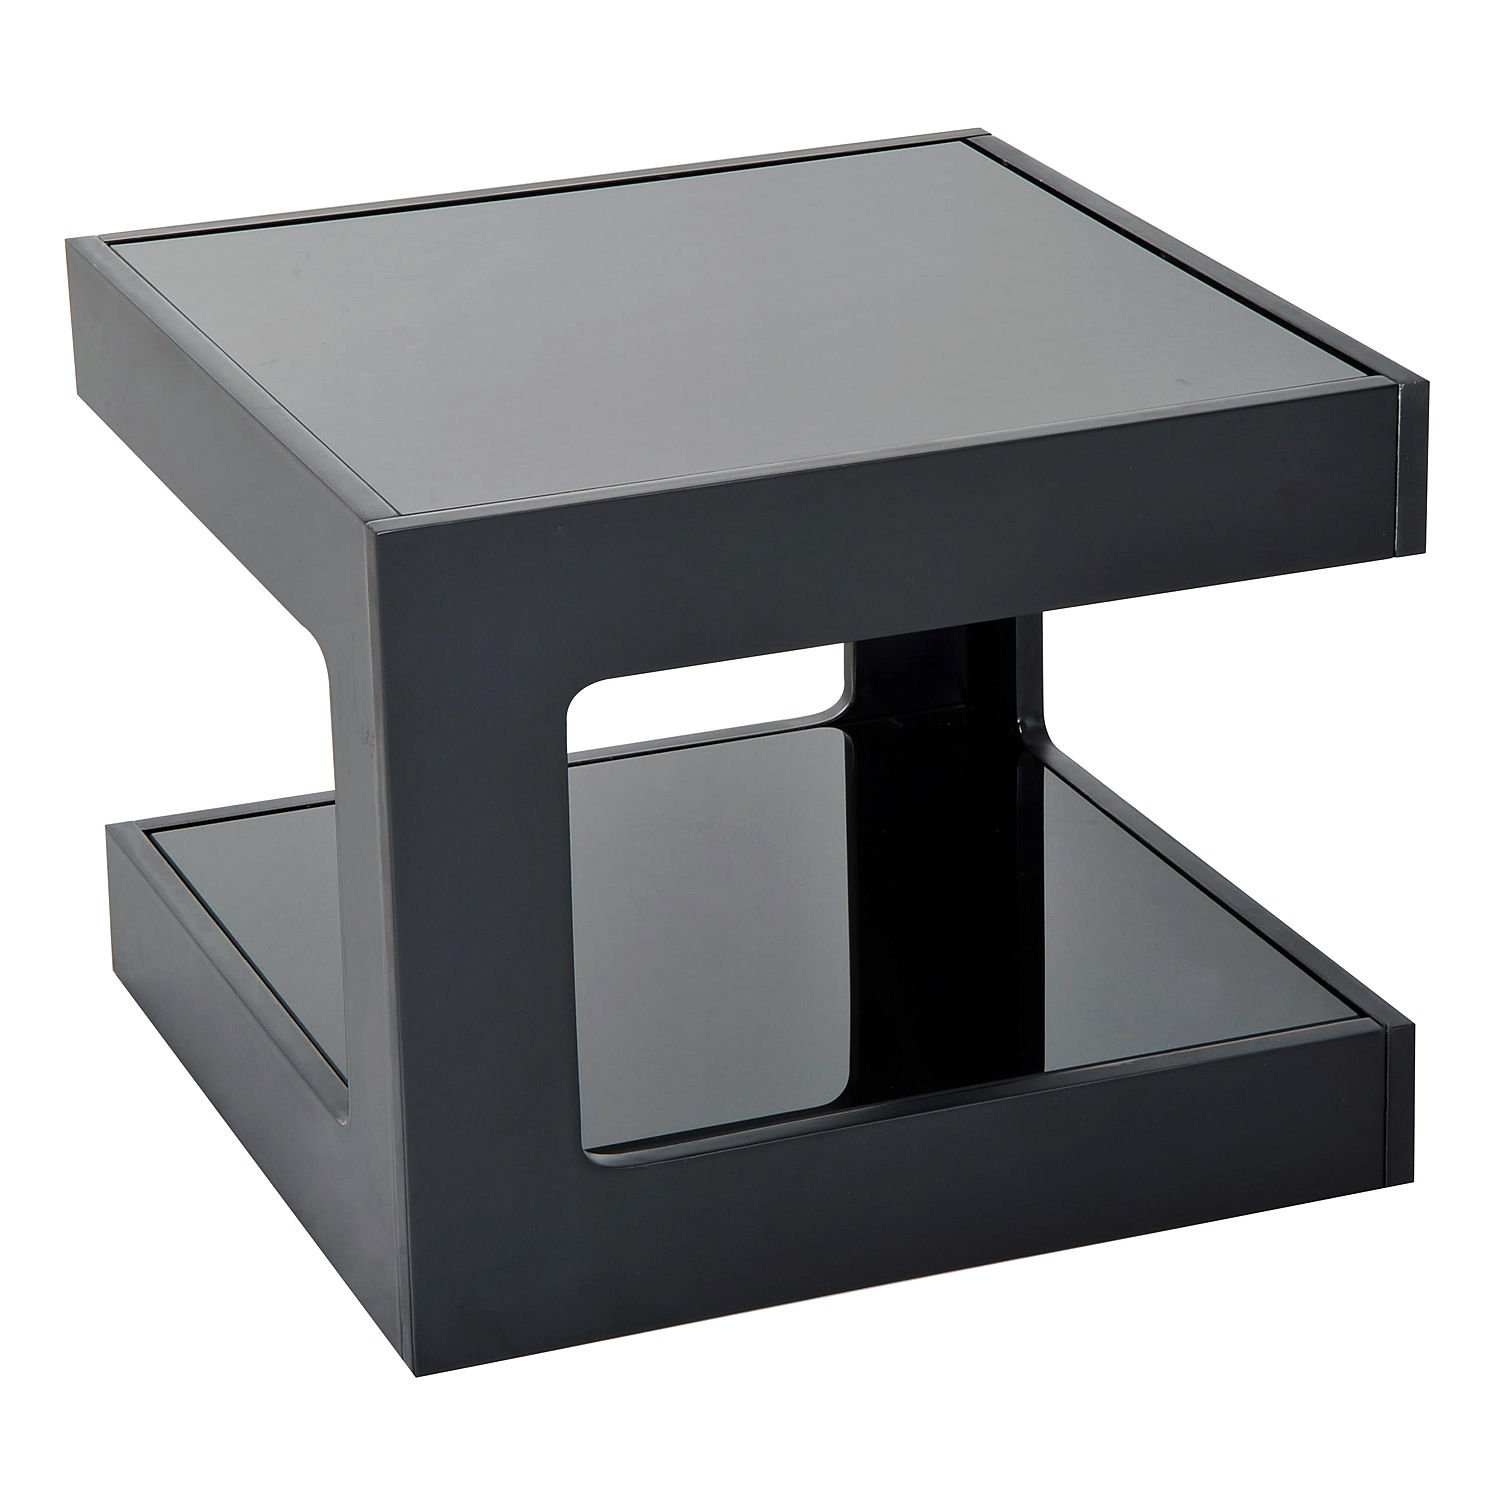 New Black Modern Square Cube Coffee Side Sofa End Table w/ Glass Top Living Room Furniture